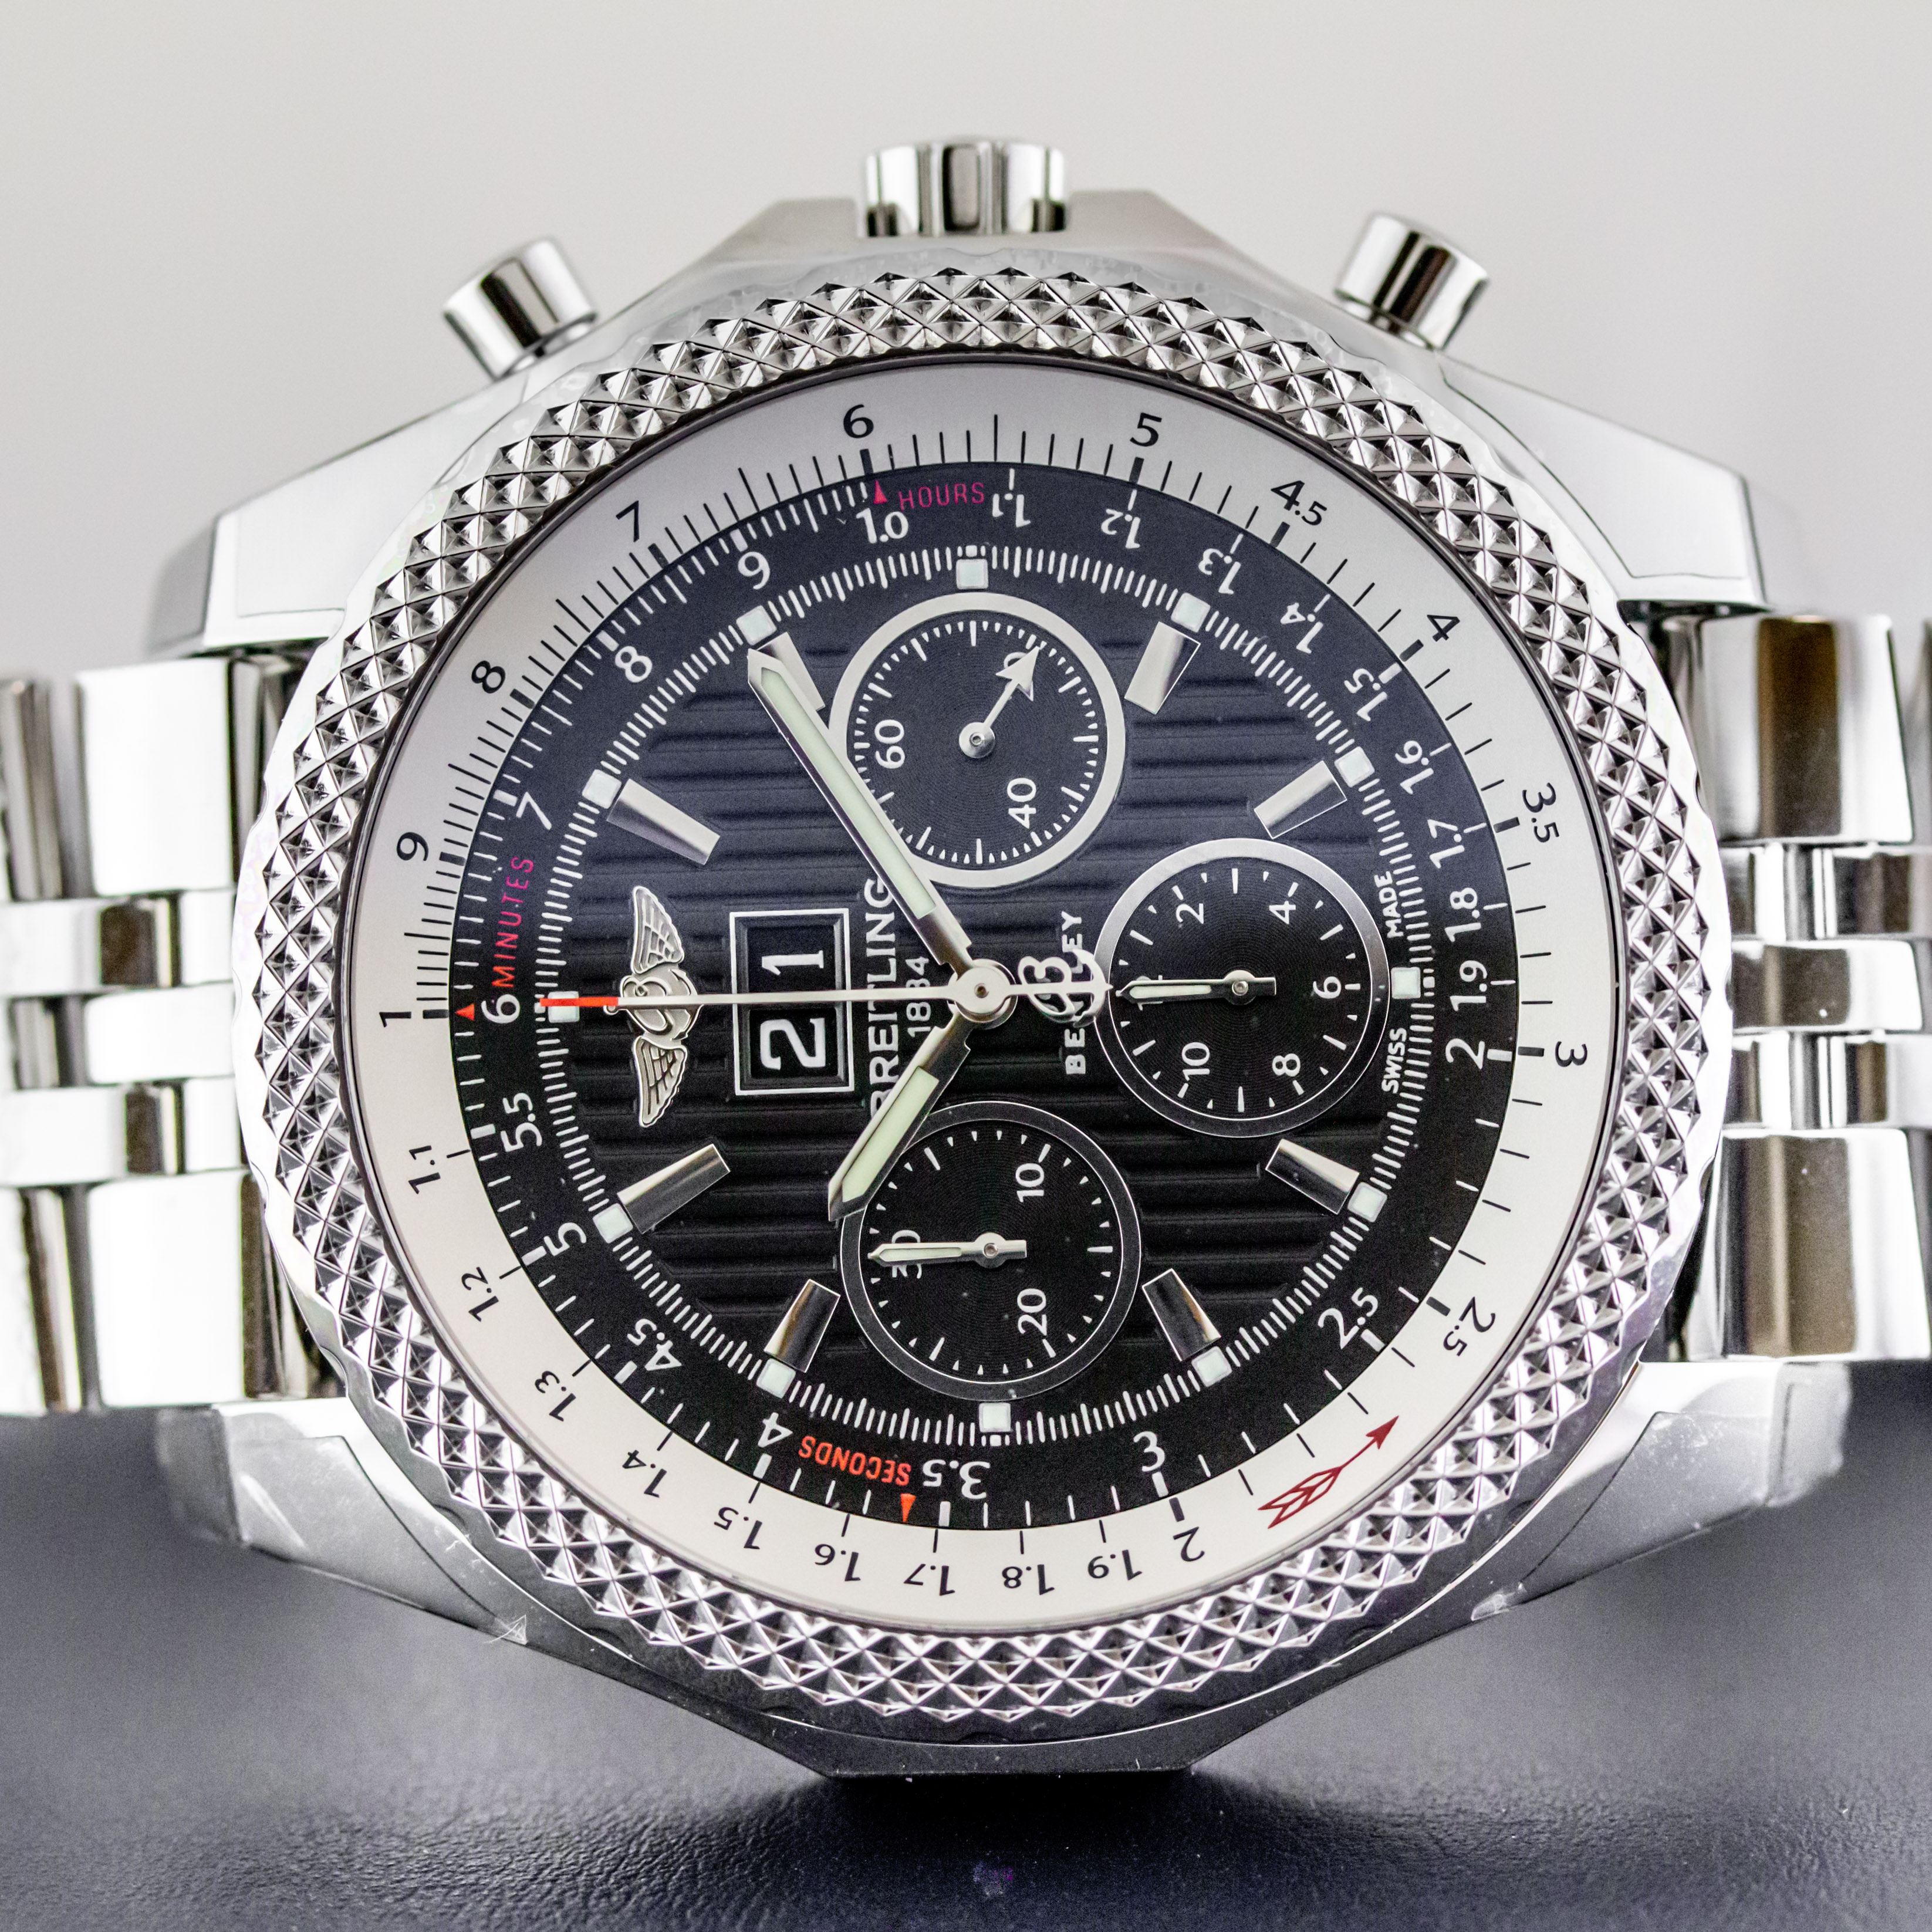 Breitling A4436412 Be17 990a Preowned Bentley 6 75 Speed